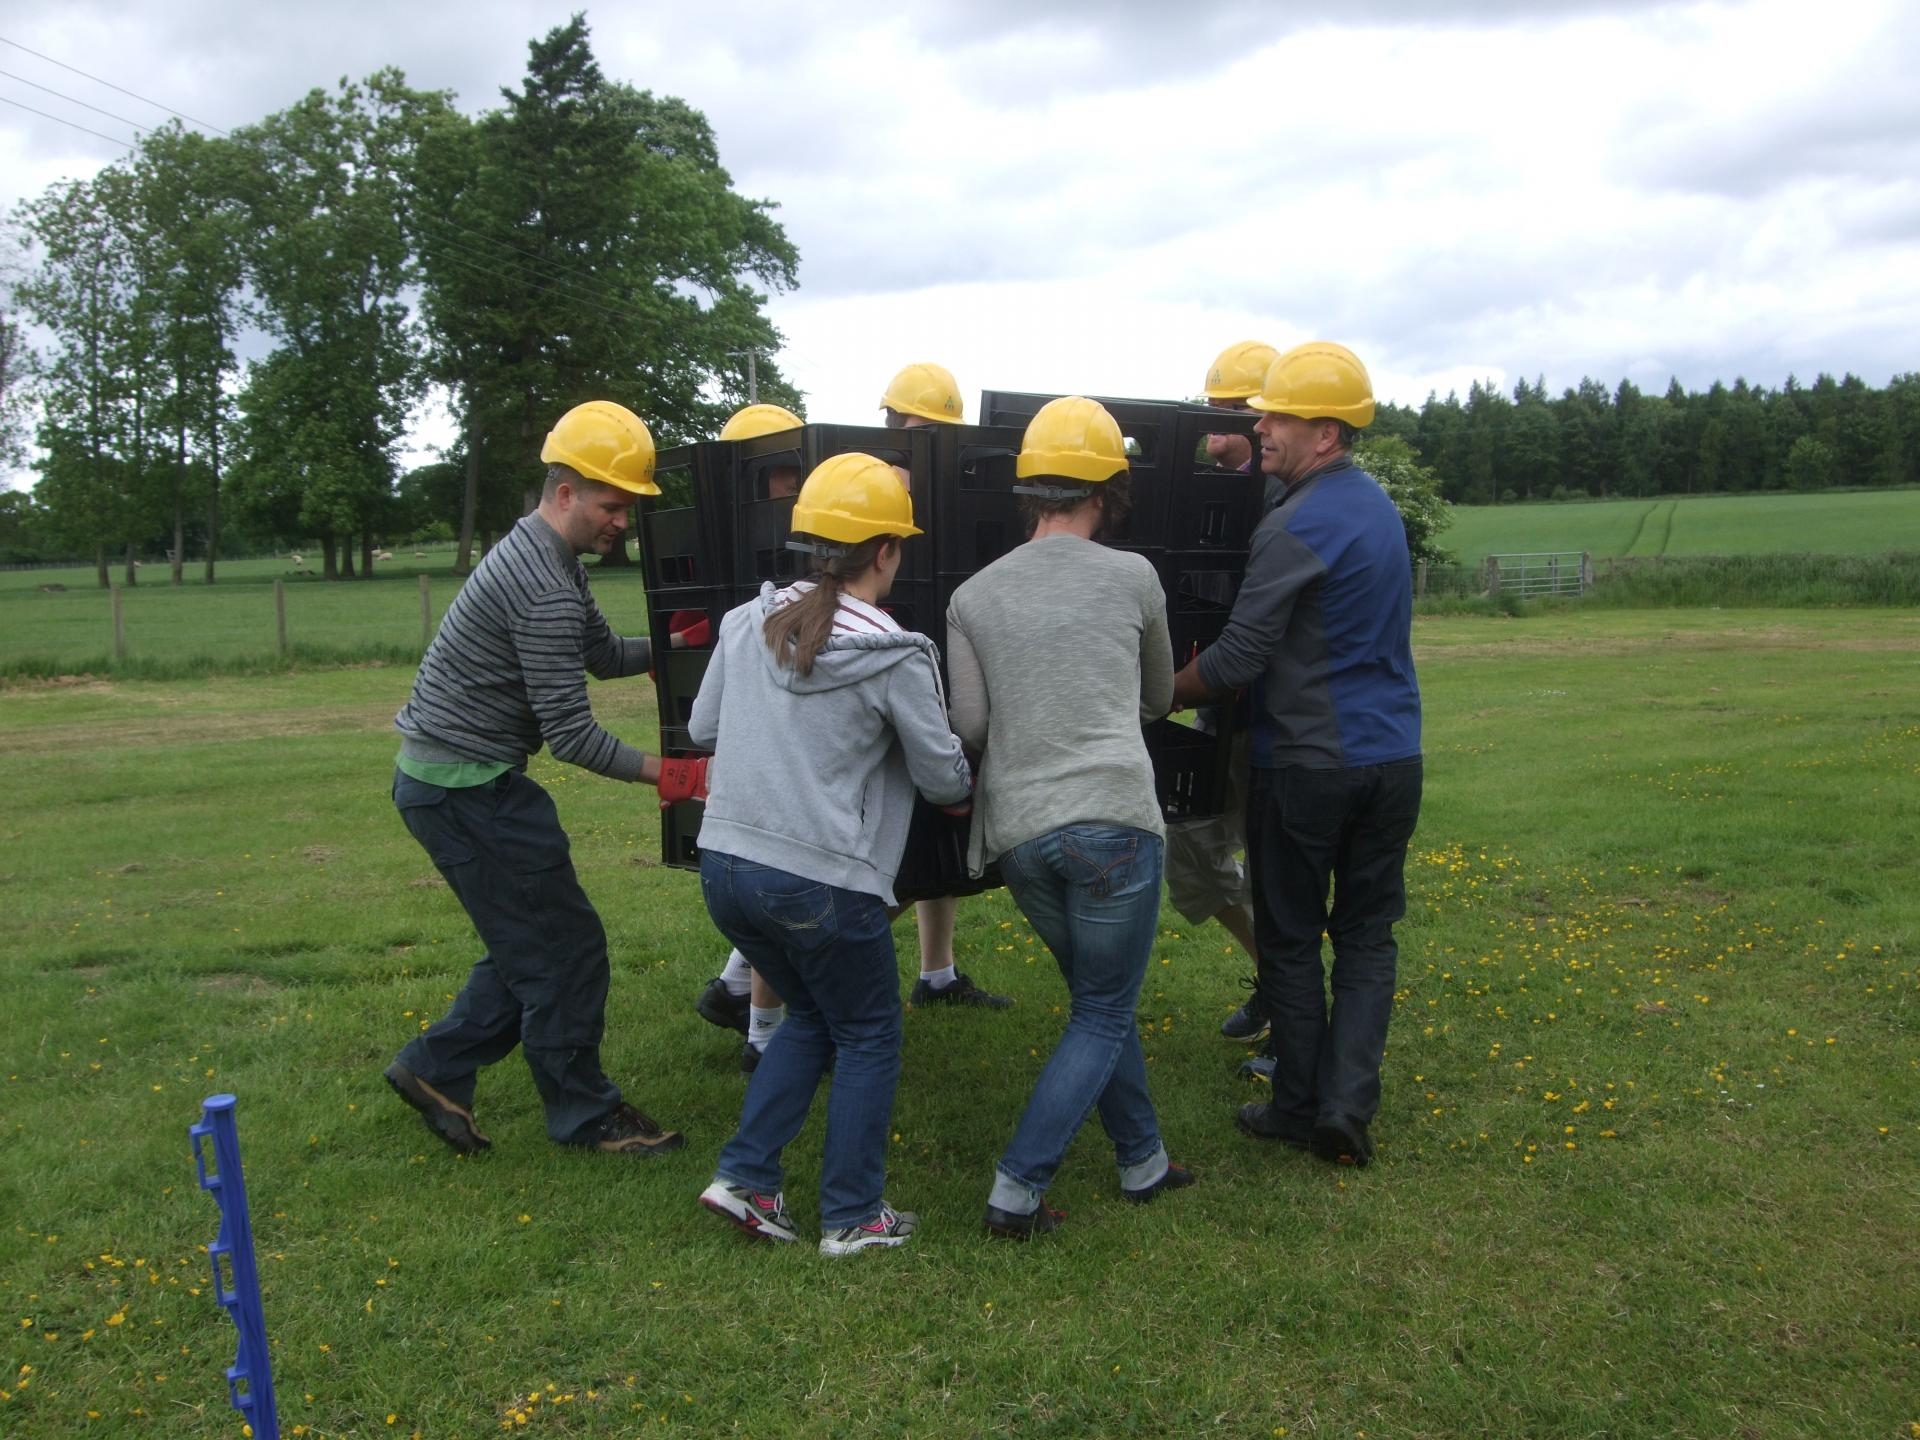 Outdoor Team Building with Standard Life